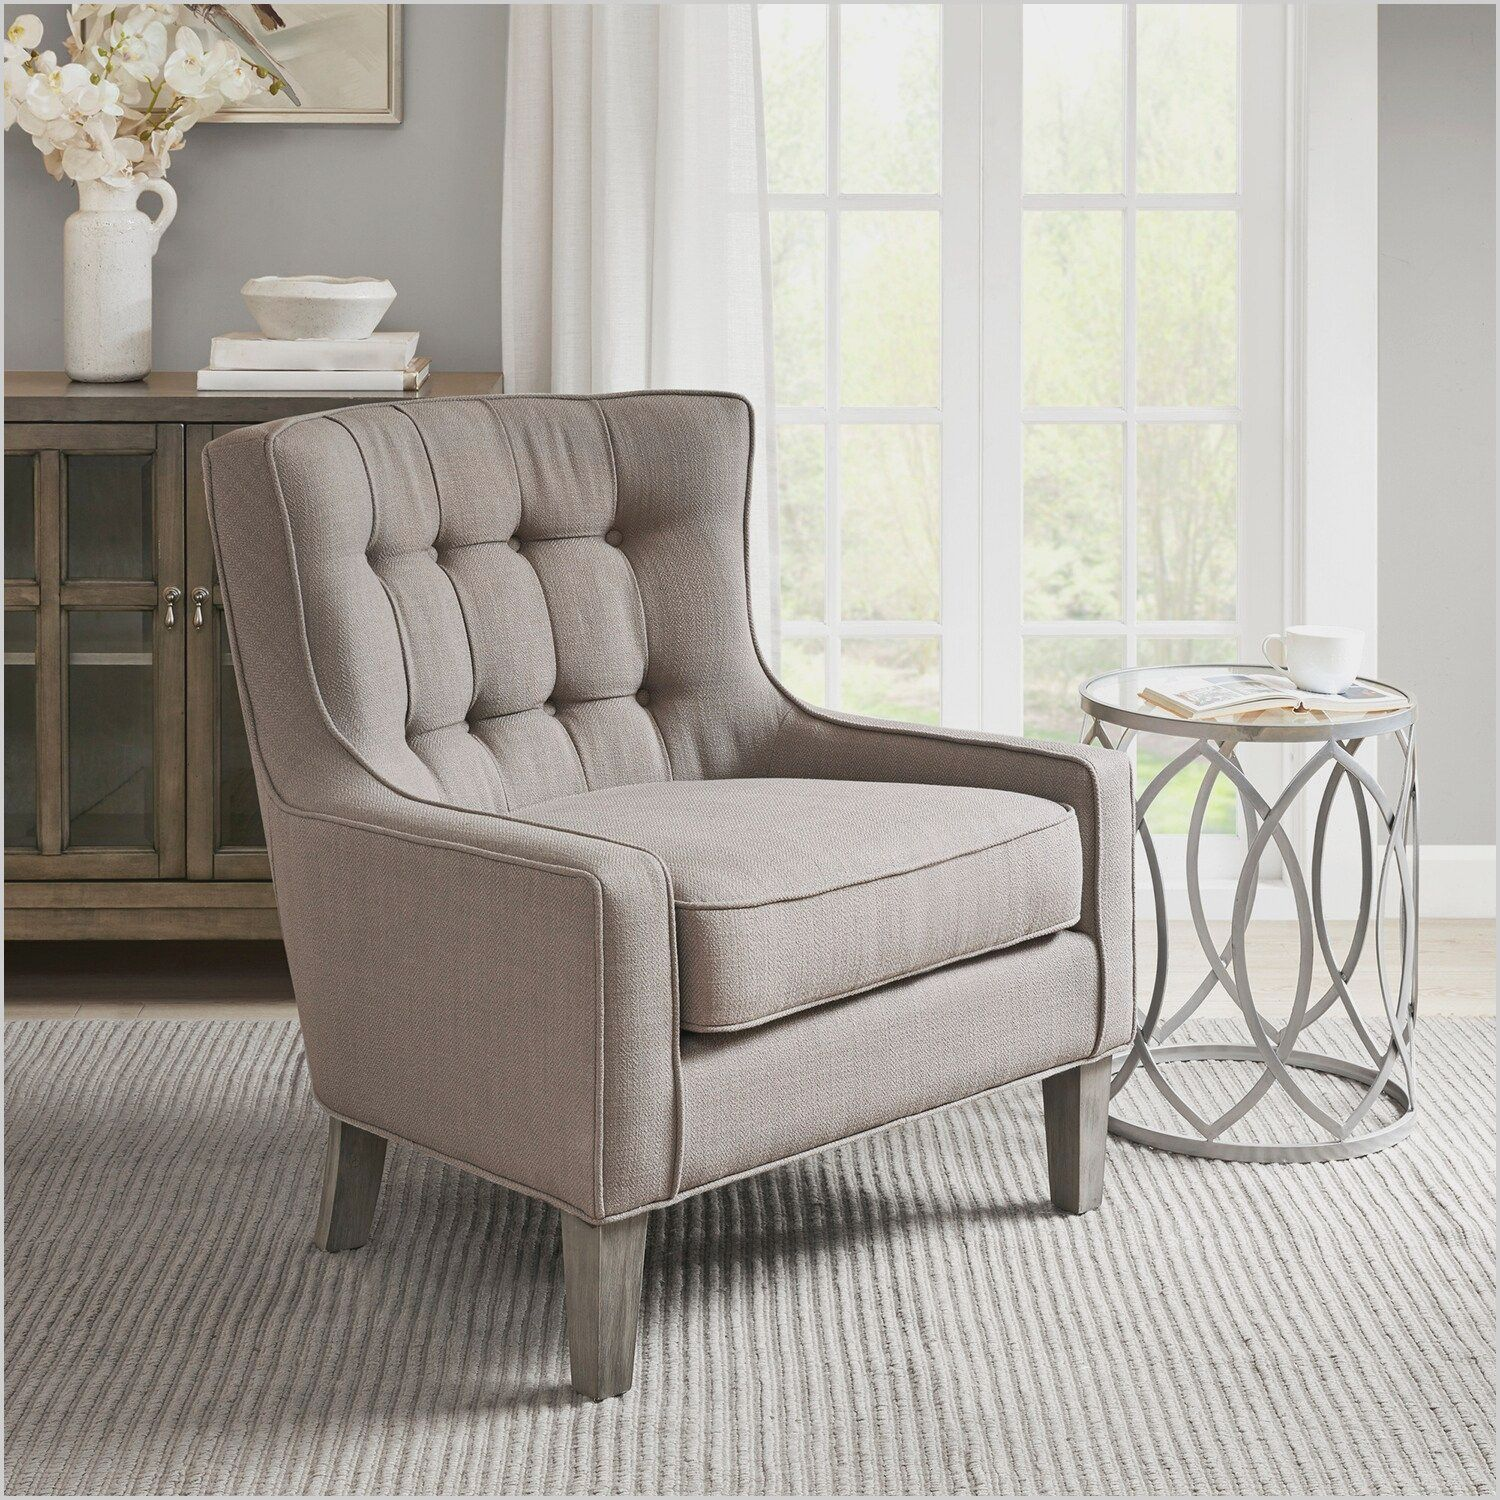 Accent Chairs In Small Living Room